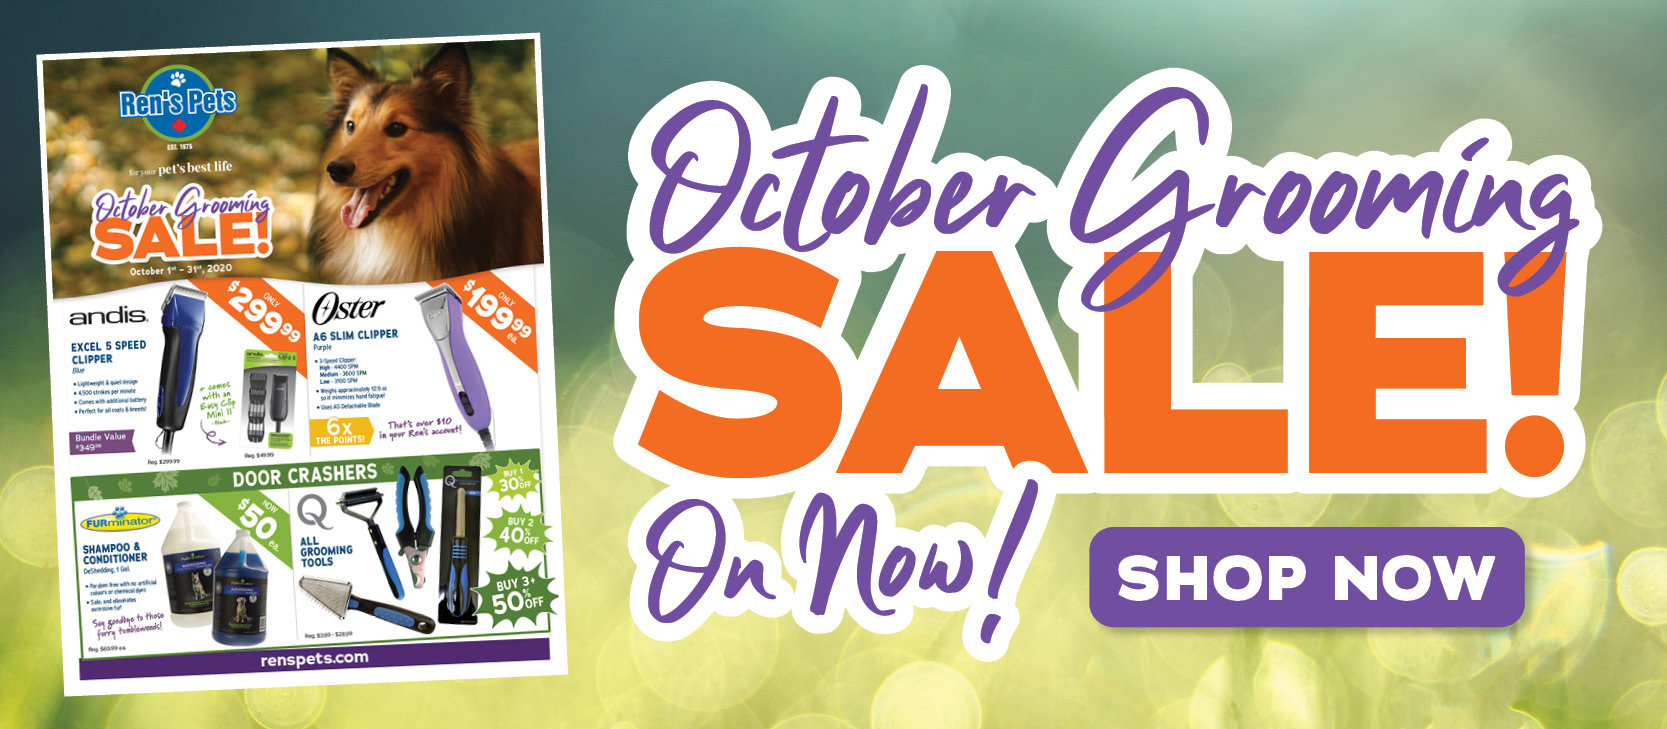 October Grooming Sale On Now